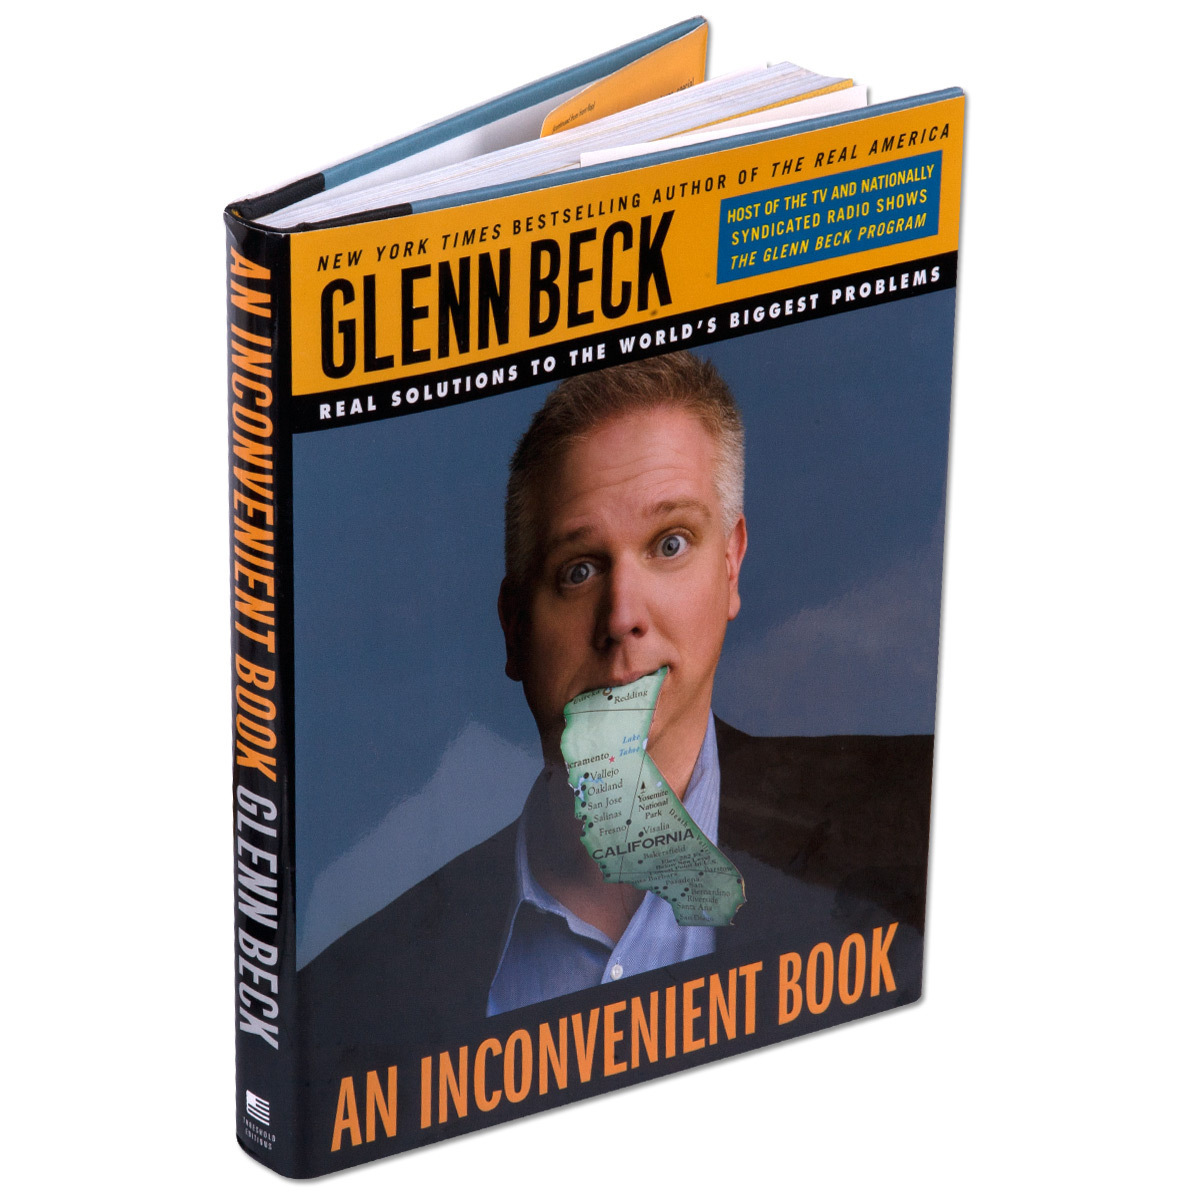 An Inconvenient Book Hardcover